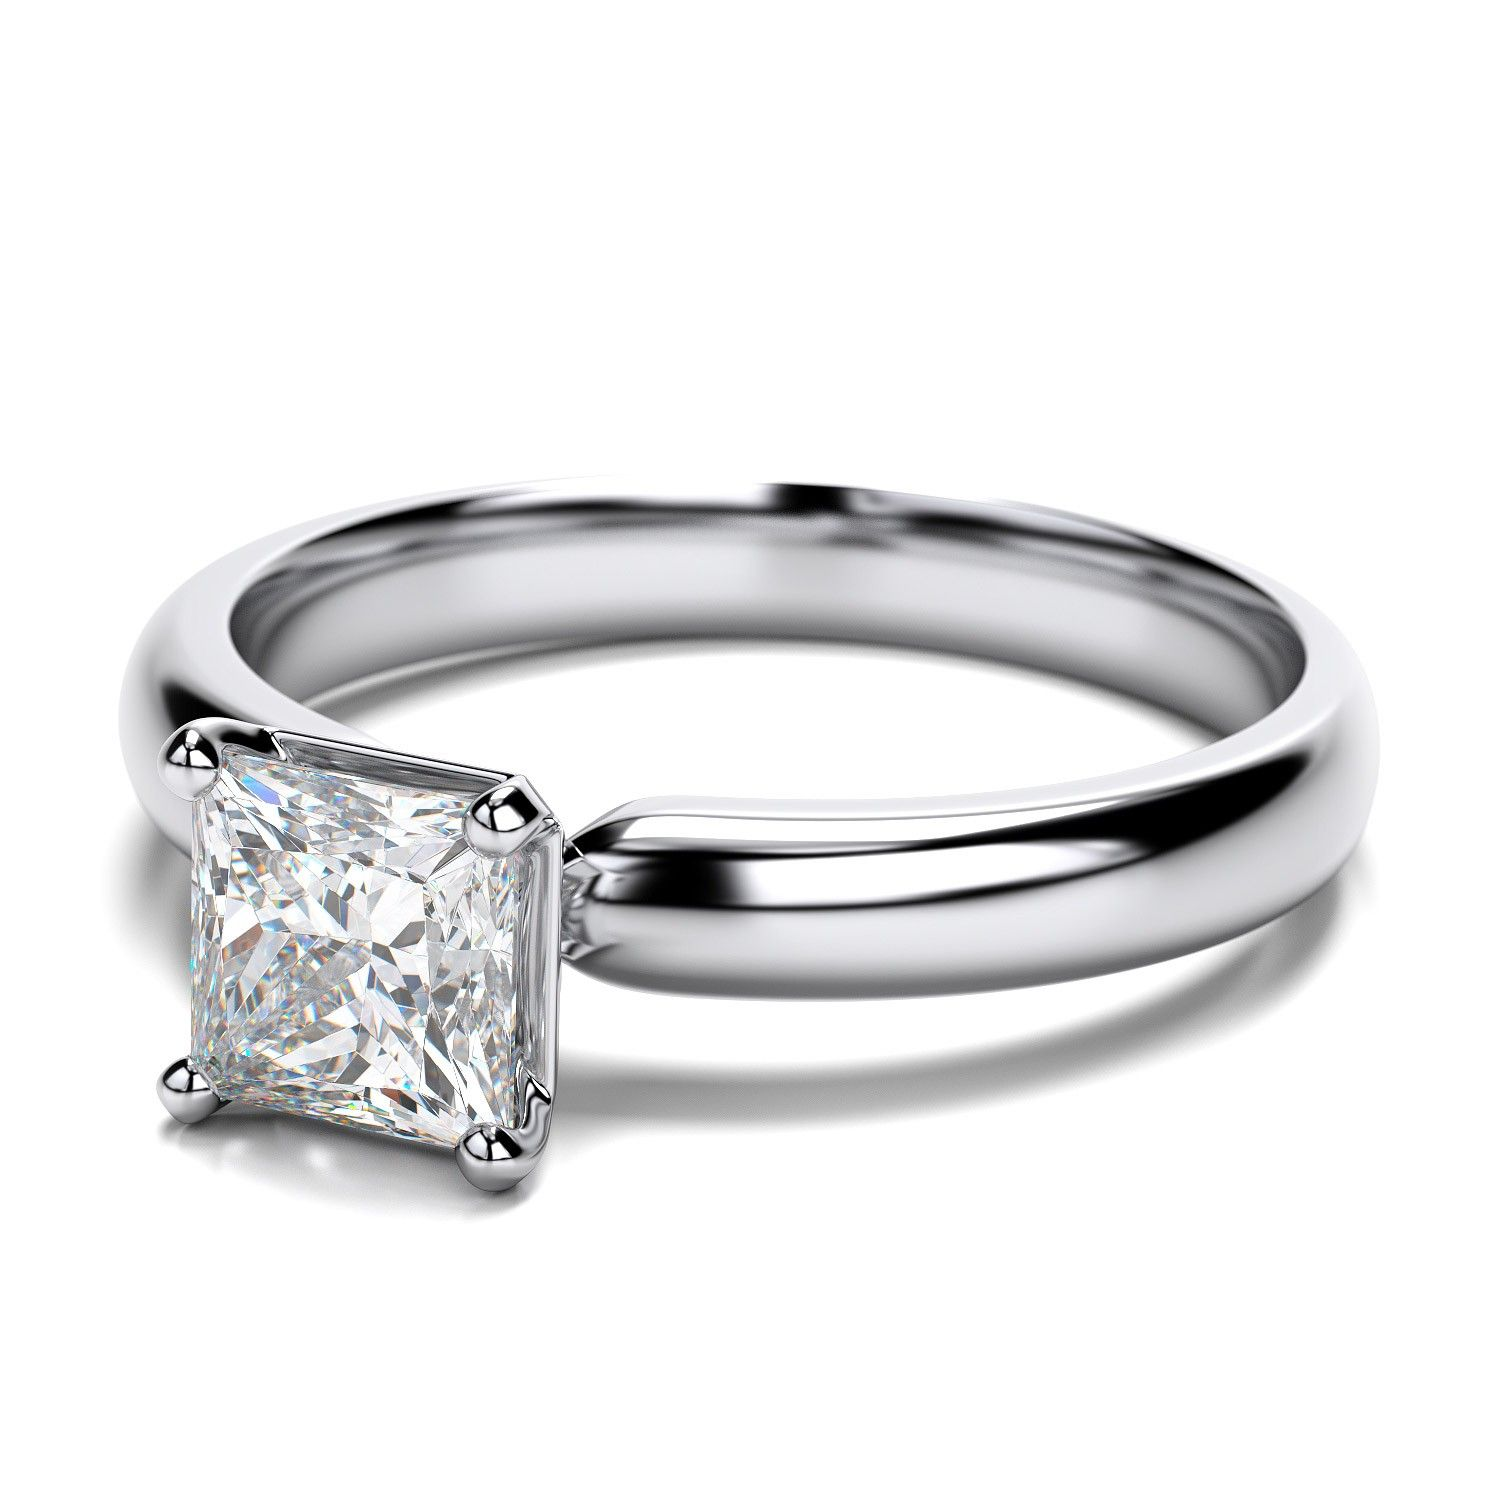 Traditional Princess Cut Diamond Engagement Ring In Platinum Visit Our Website To Create Your Perfect